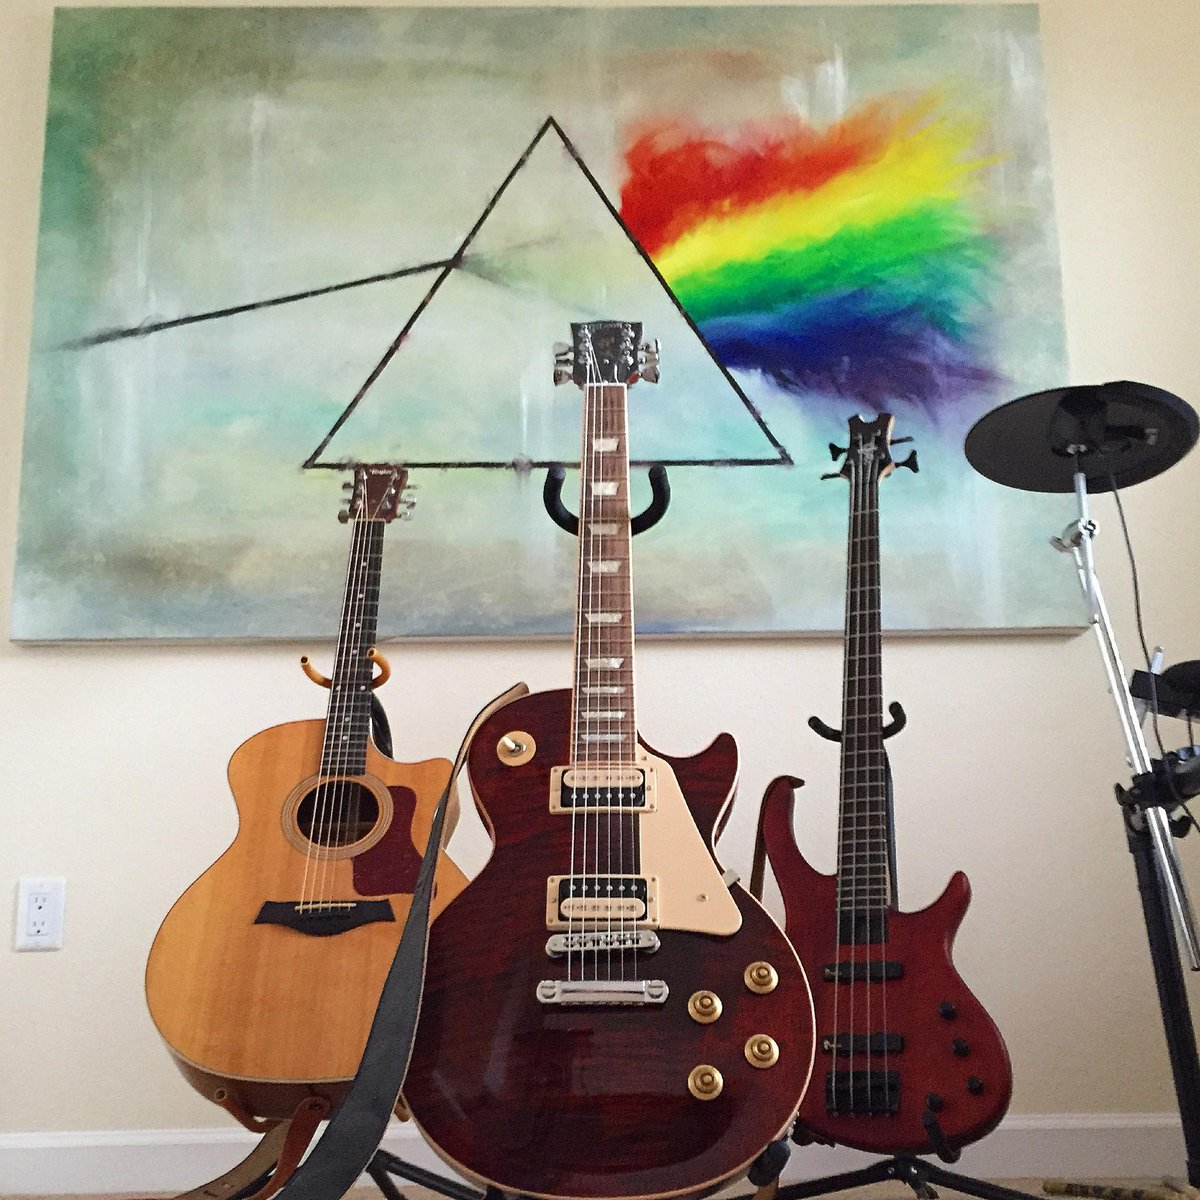 #pinkfloyd #darksideofthemoon painting for my studio... #lespaul #taylor guitars http://t.co/jJ0dW7WztB